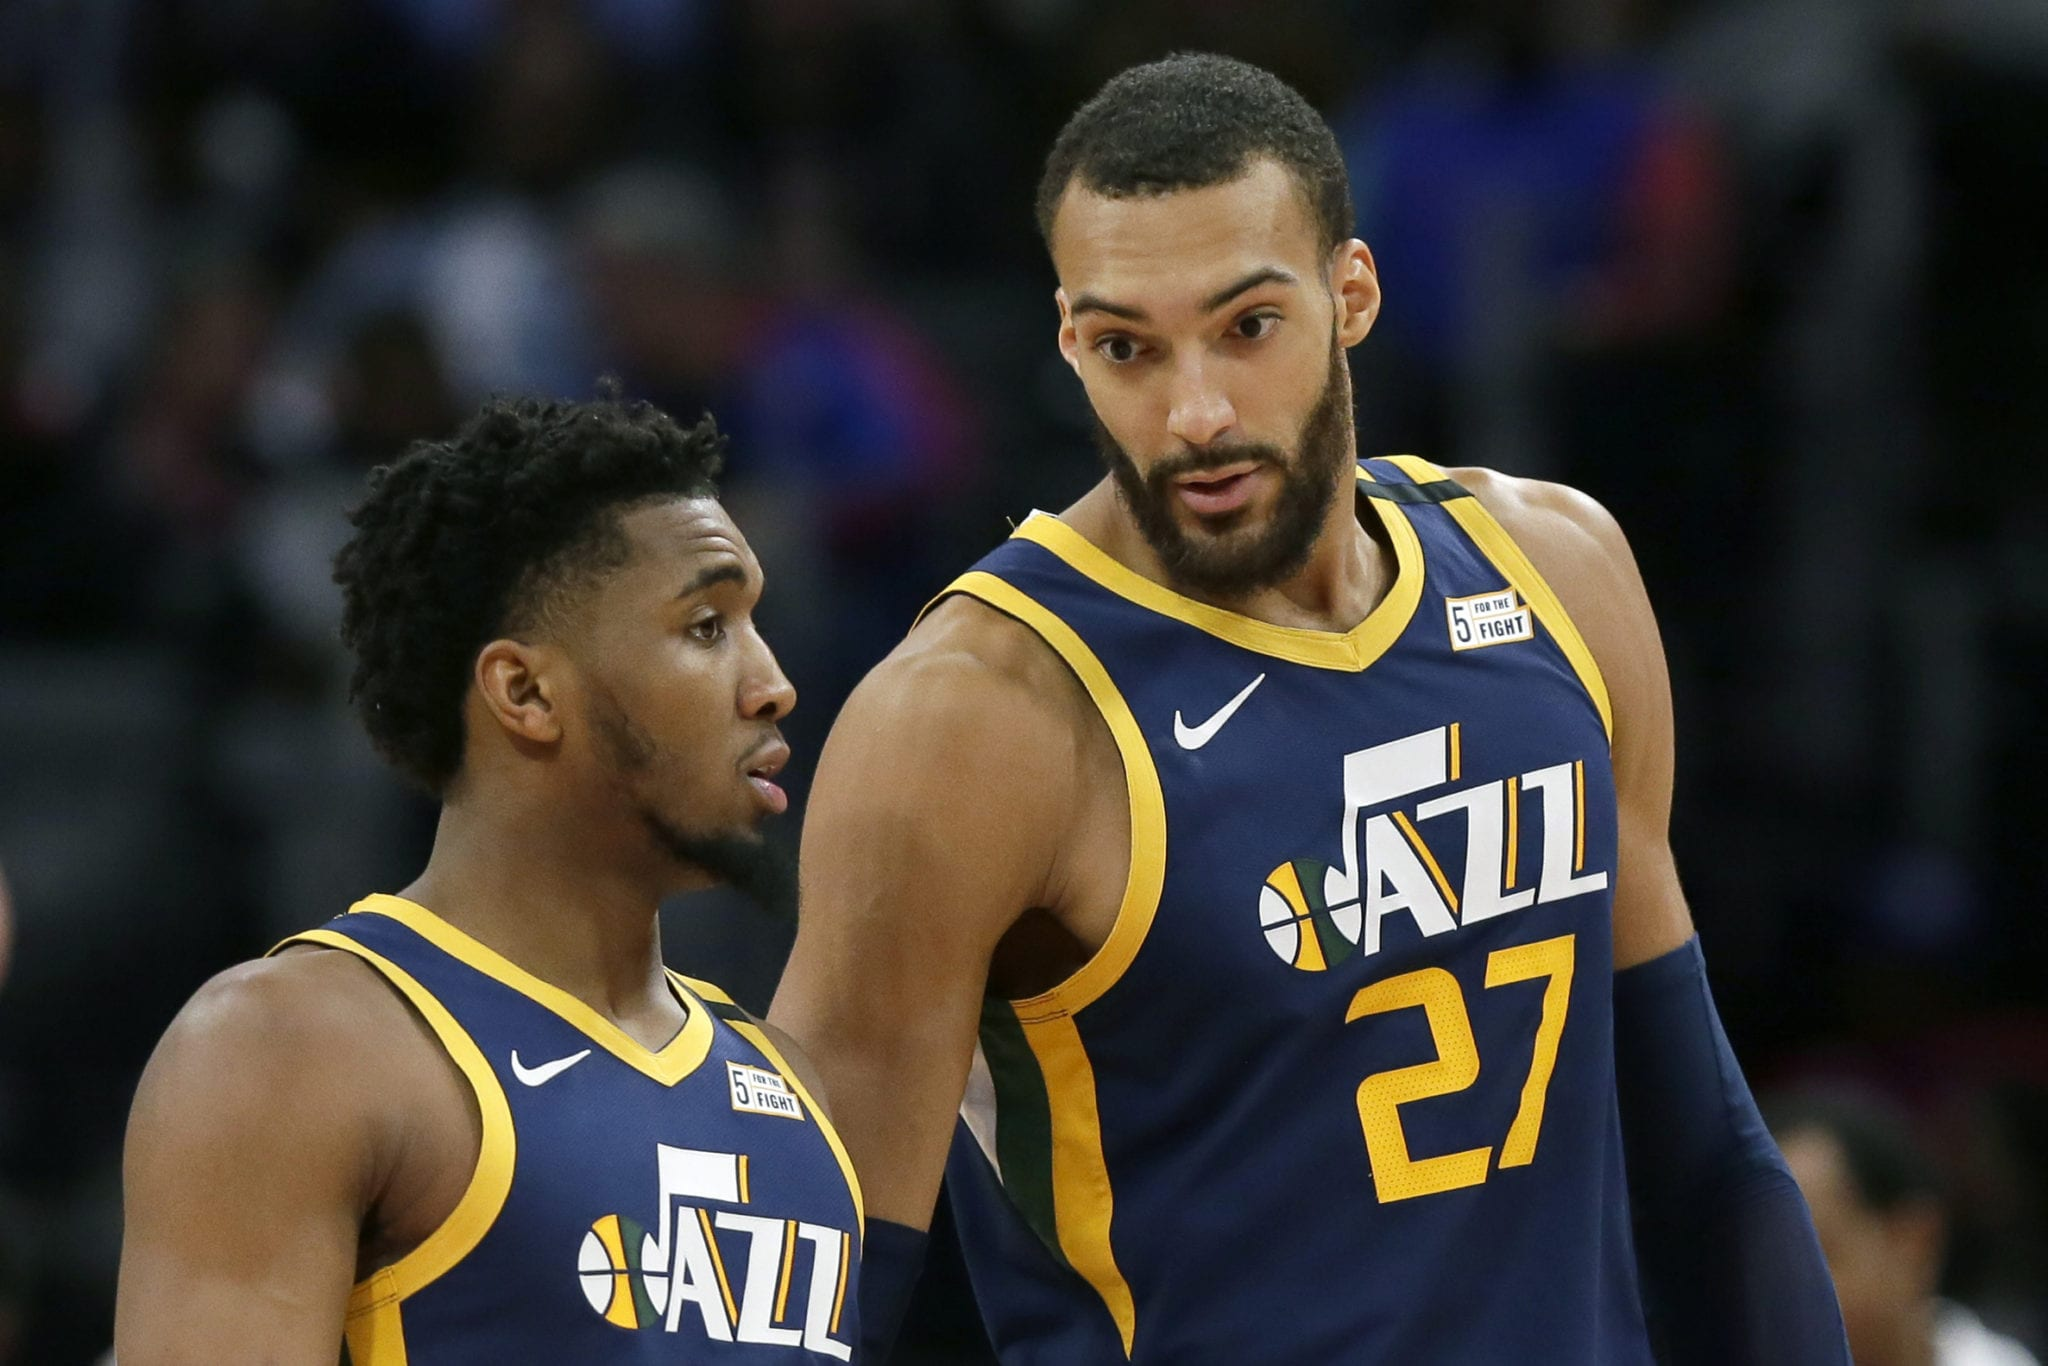 Rudy Gobert, Donovan Mitchell and Rest of Utah Jazz Cleared of Coronavirus